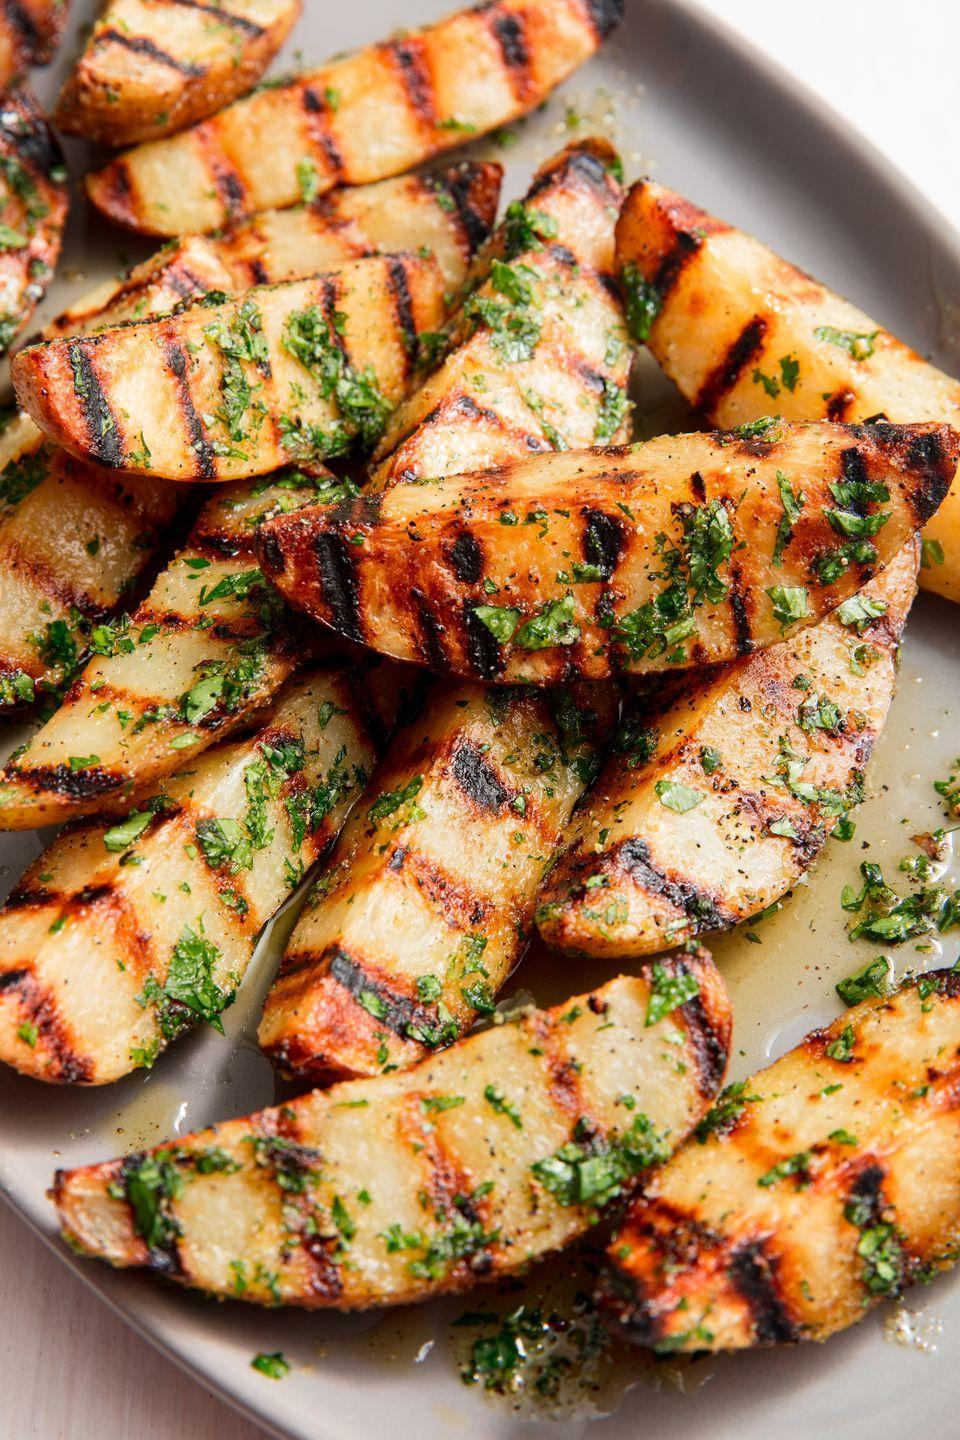 """<p>These *might* just be better than fries.</p><p>Get the recipe from <a href=""""https://www.delish.com/cooking/recipe-ideas/a20164811/best-grilled-potatoes-recipe/"""" rel=""""nofollow noopener"""" target=""""_blank"""" data-ylk=""""slk:Delish"""" class=""""link rapid-noclick-resp"""">Delish</a>. </p>"""